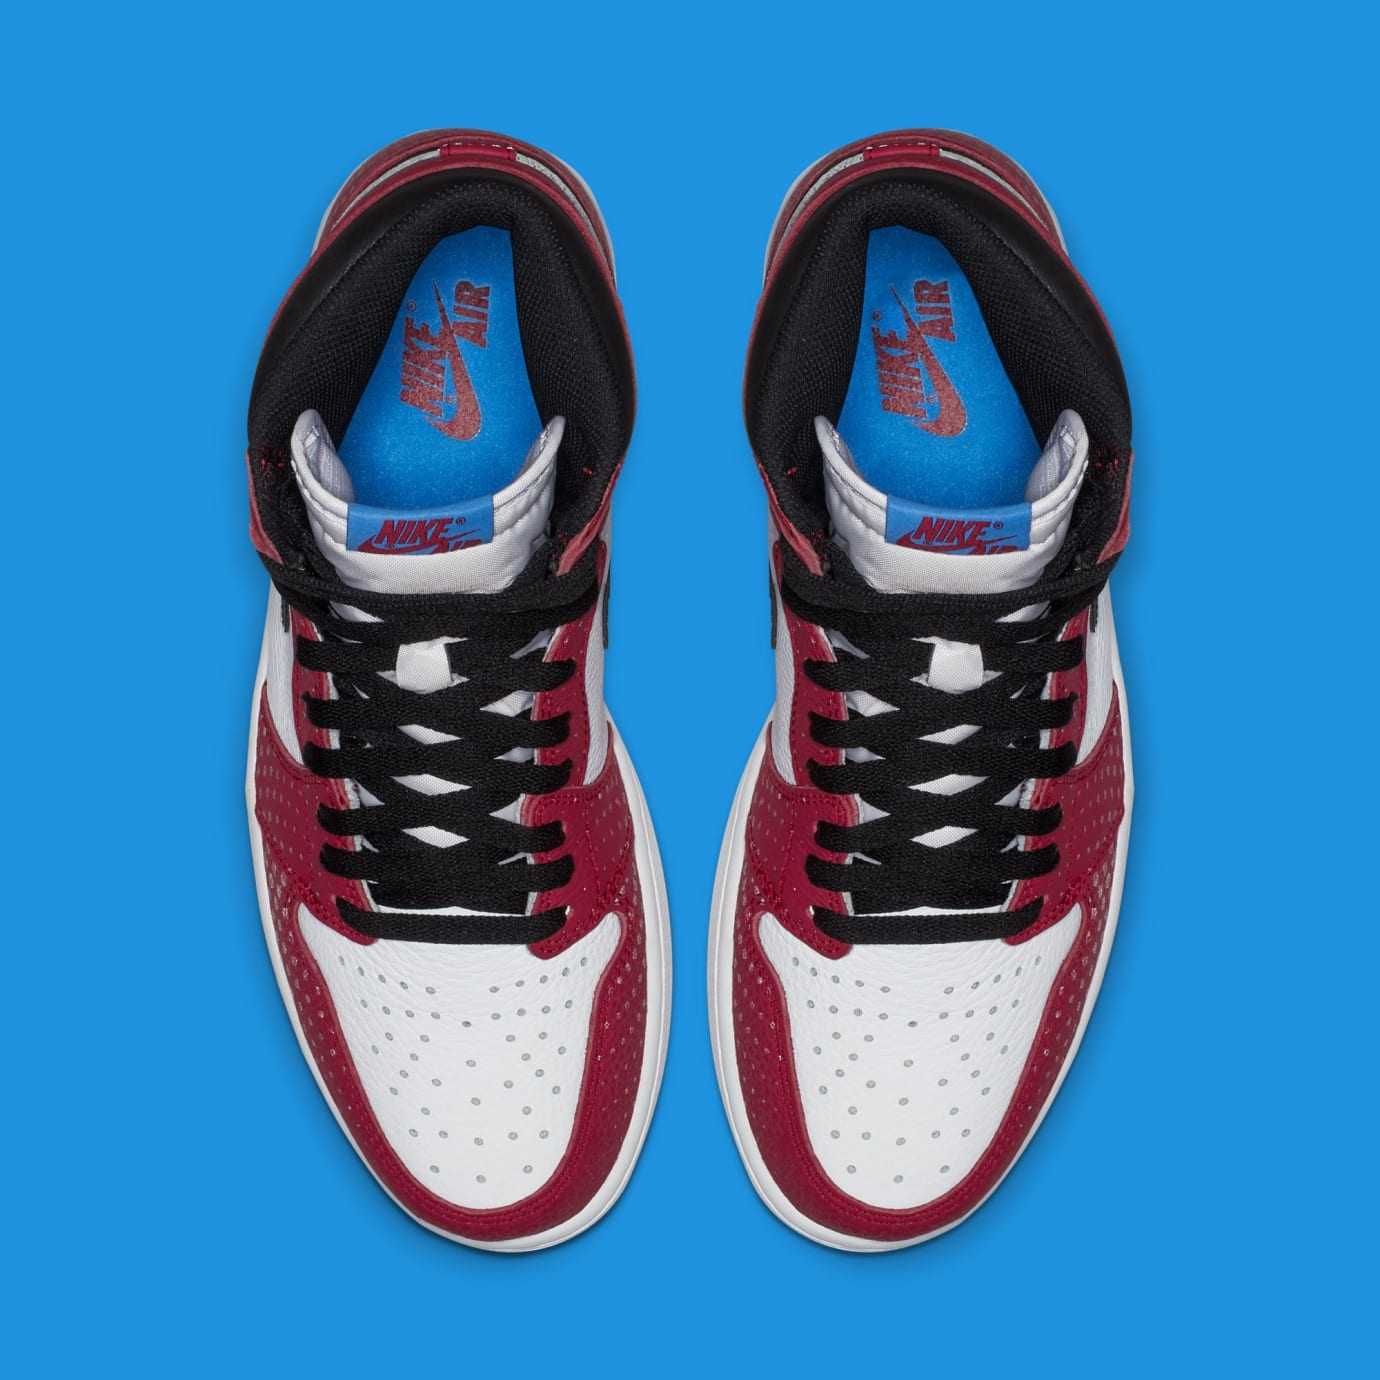 ddd456d34e3701 Image via Nike Air Jordan 1  Origin Story  Red White-Photo Blue-Black 555088